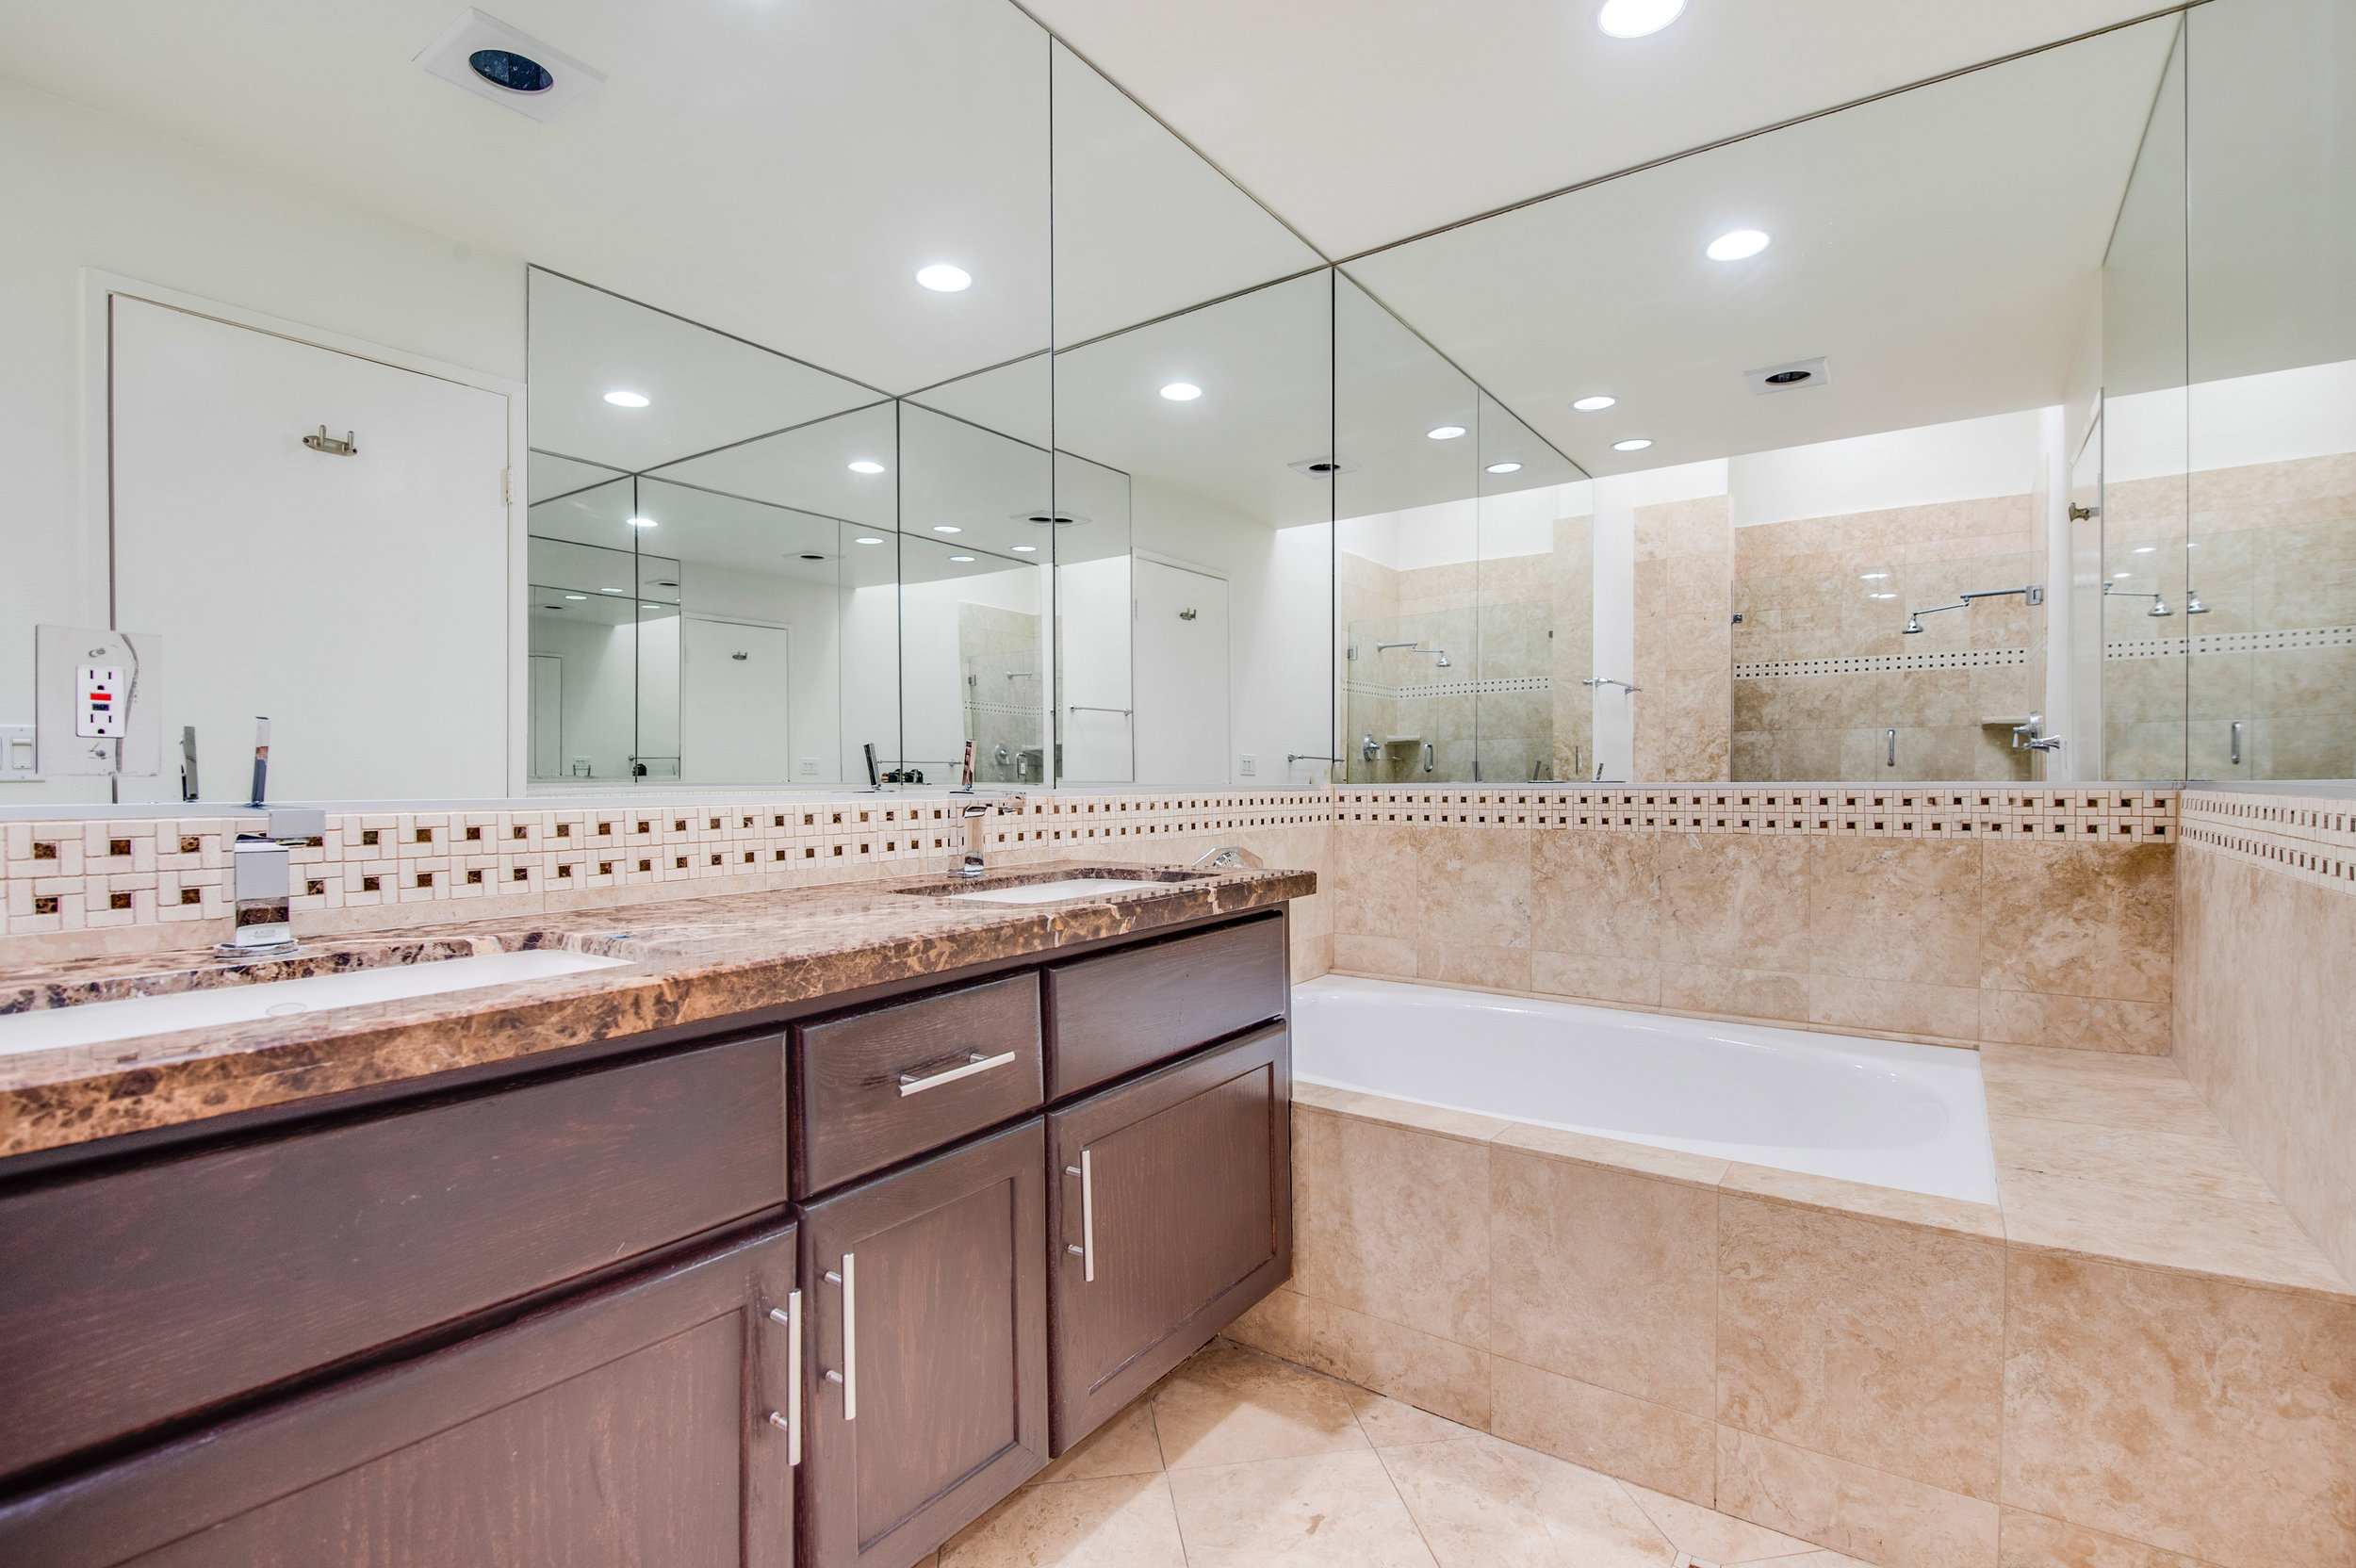 011 Master Bathroom 1735 Malcolm Avenue For Sale Lease The Malibu Life Team Luxury Real Estate.jpg